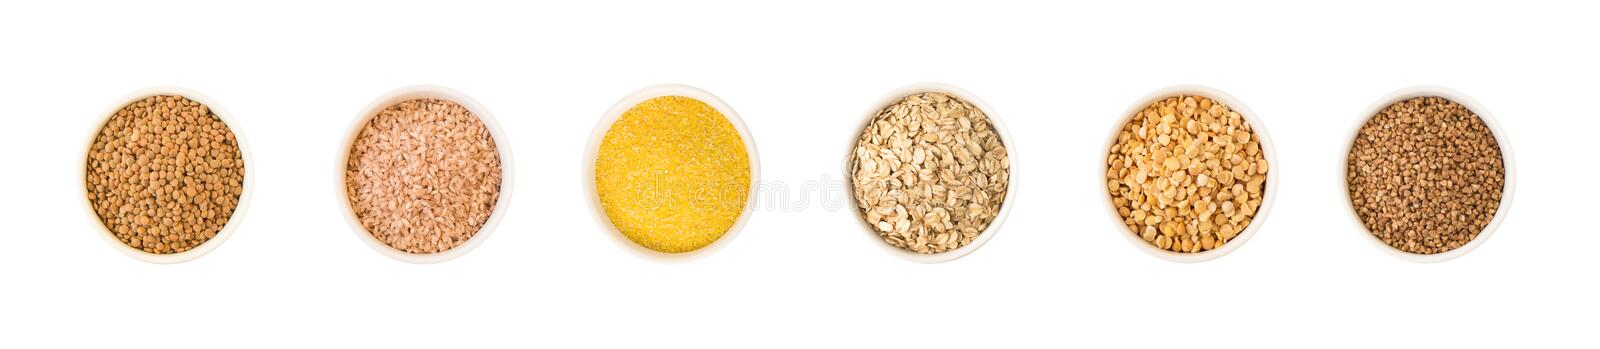 Cereal and seeds in round ceramic plates. stock photos